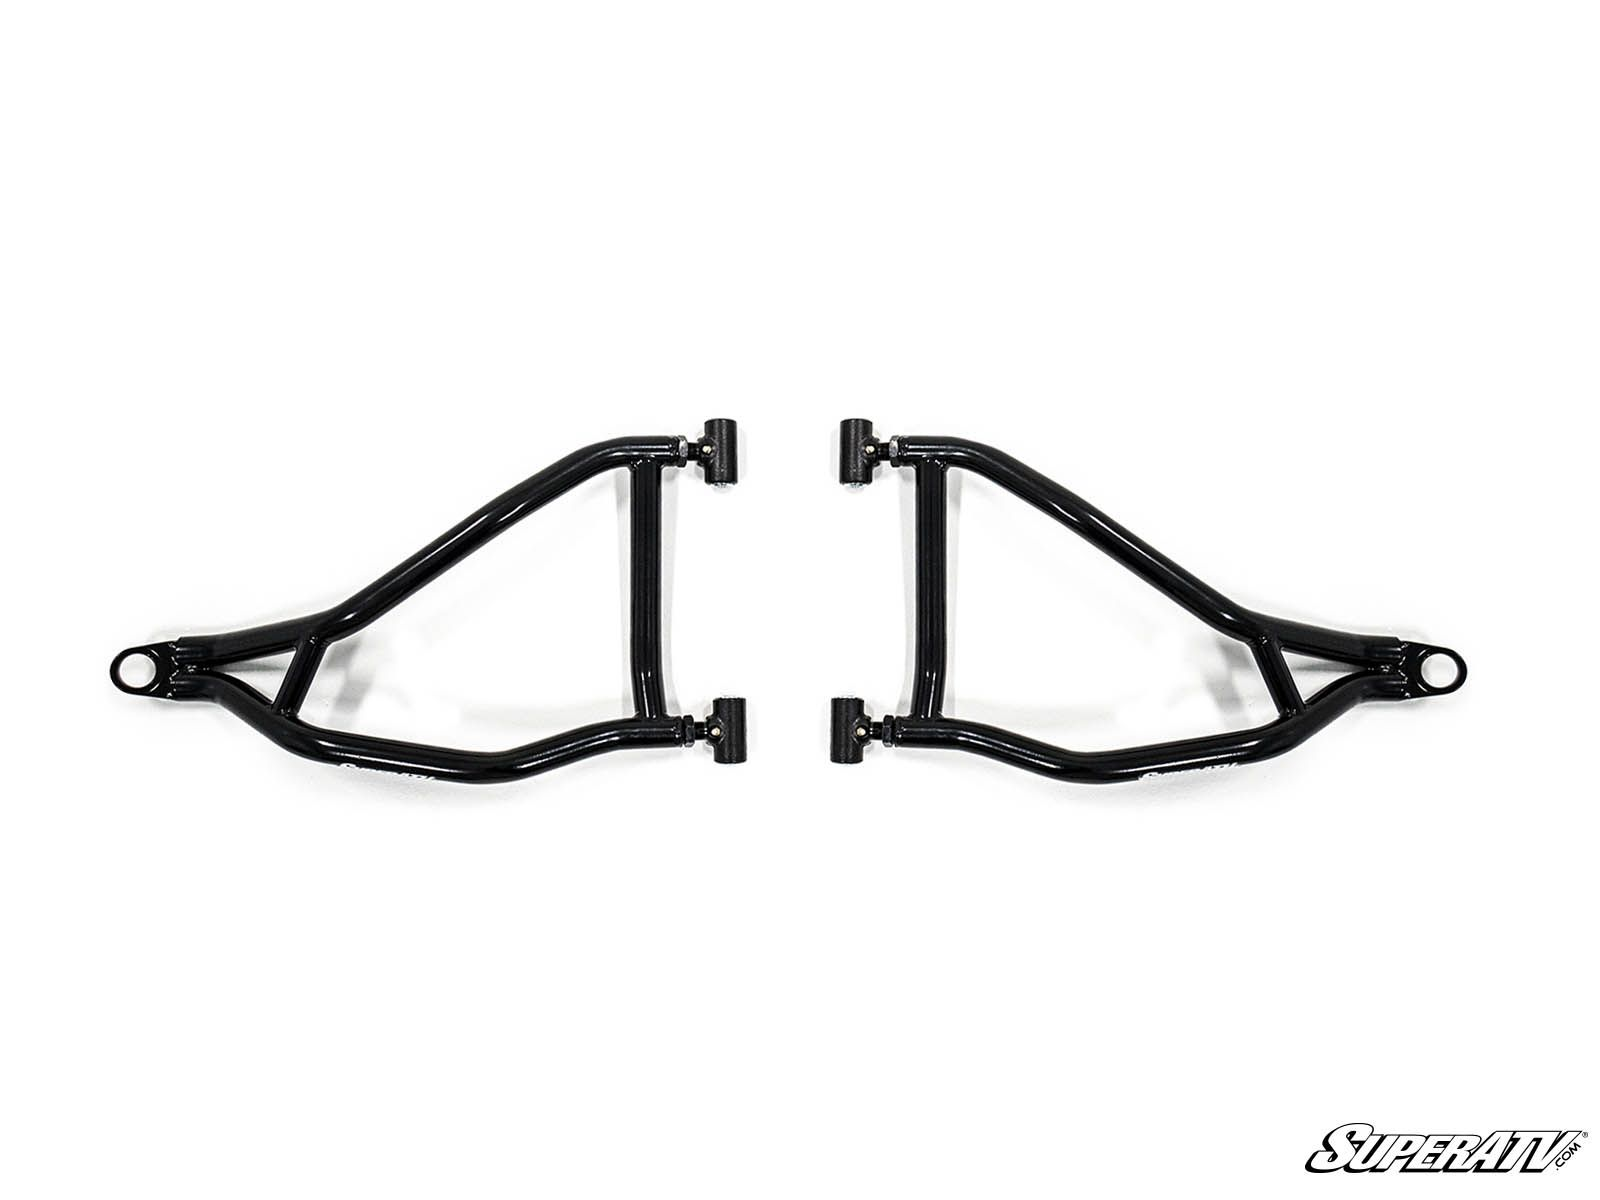 Superatv High Clearance A Arms For Polaris Rzr Xp